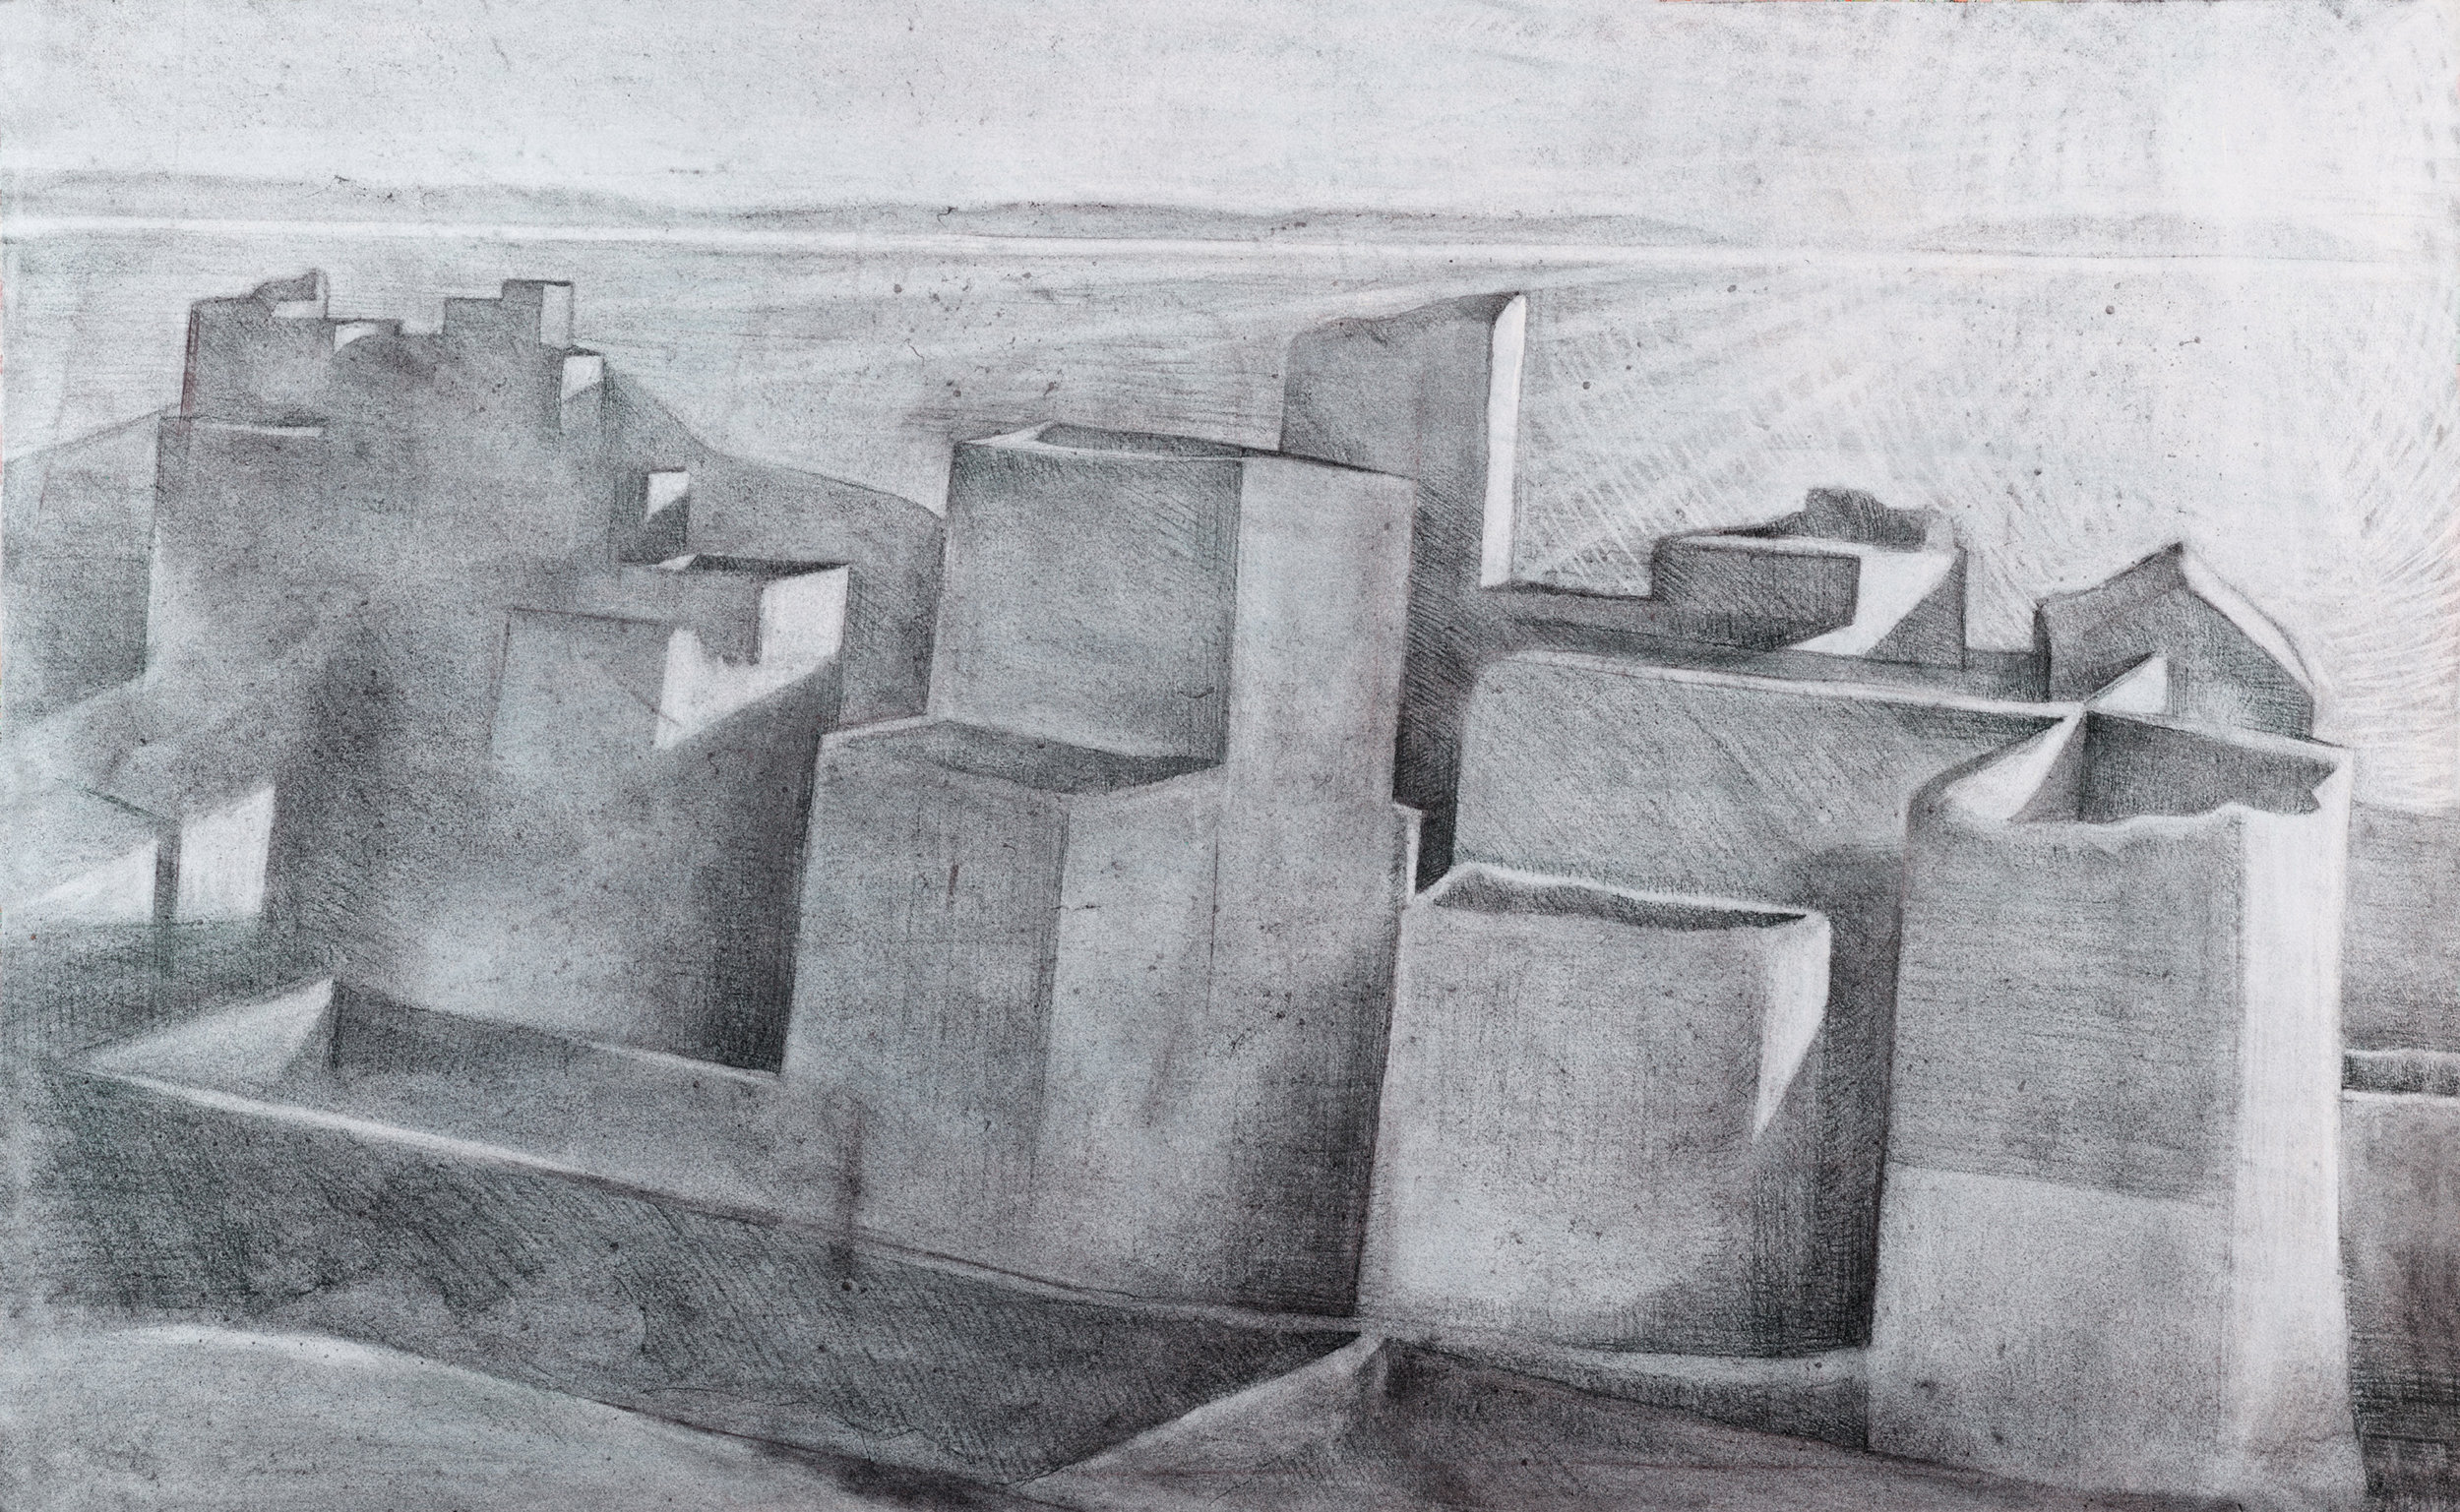 'Sunrise on the sunward side: Layia and the Gulf of Laconia' charcoal on paper 55 x 85 cm